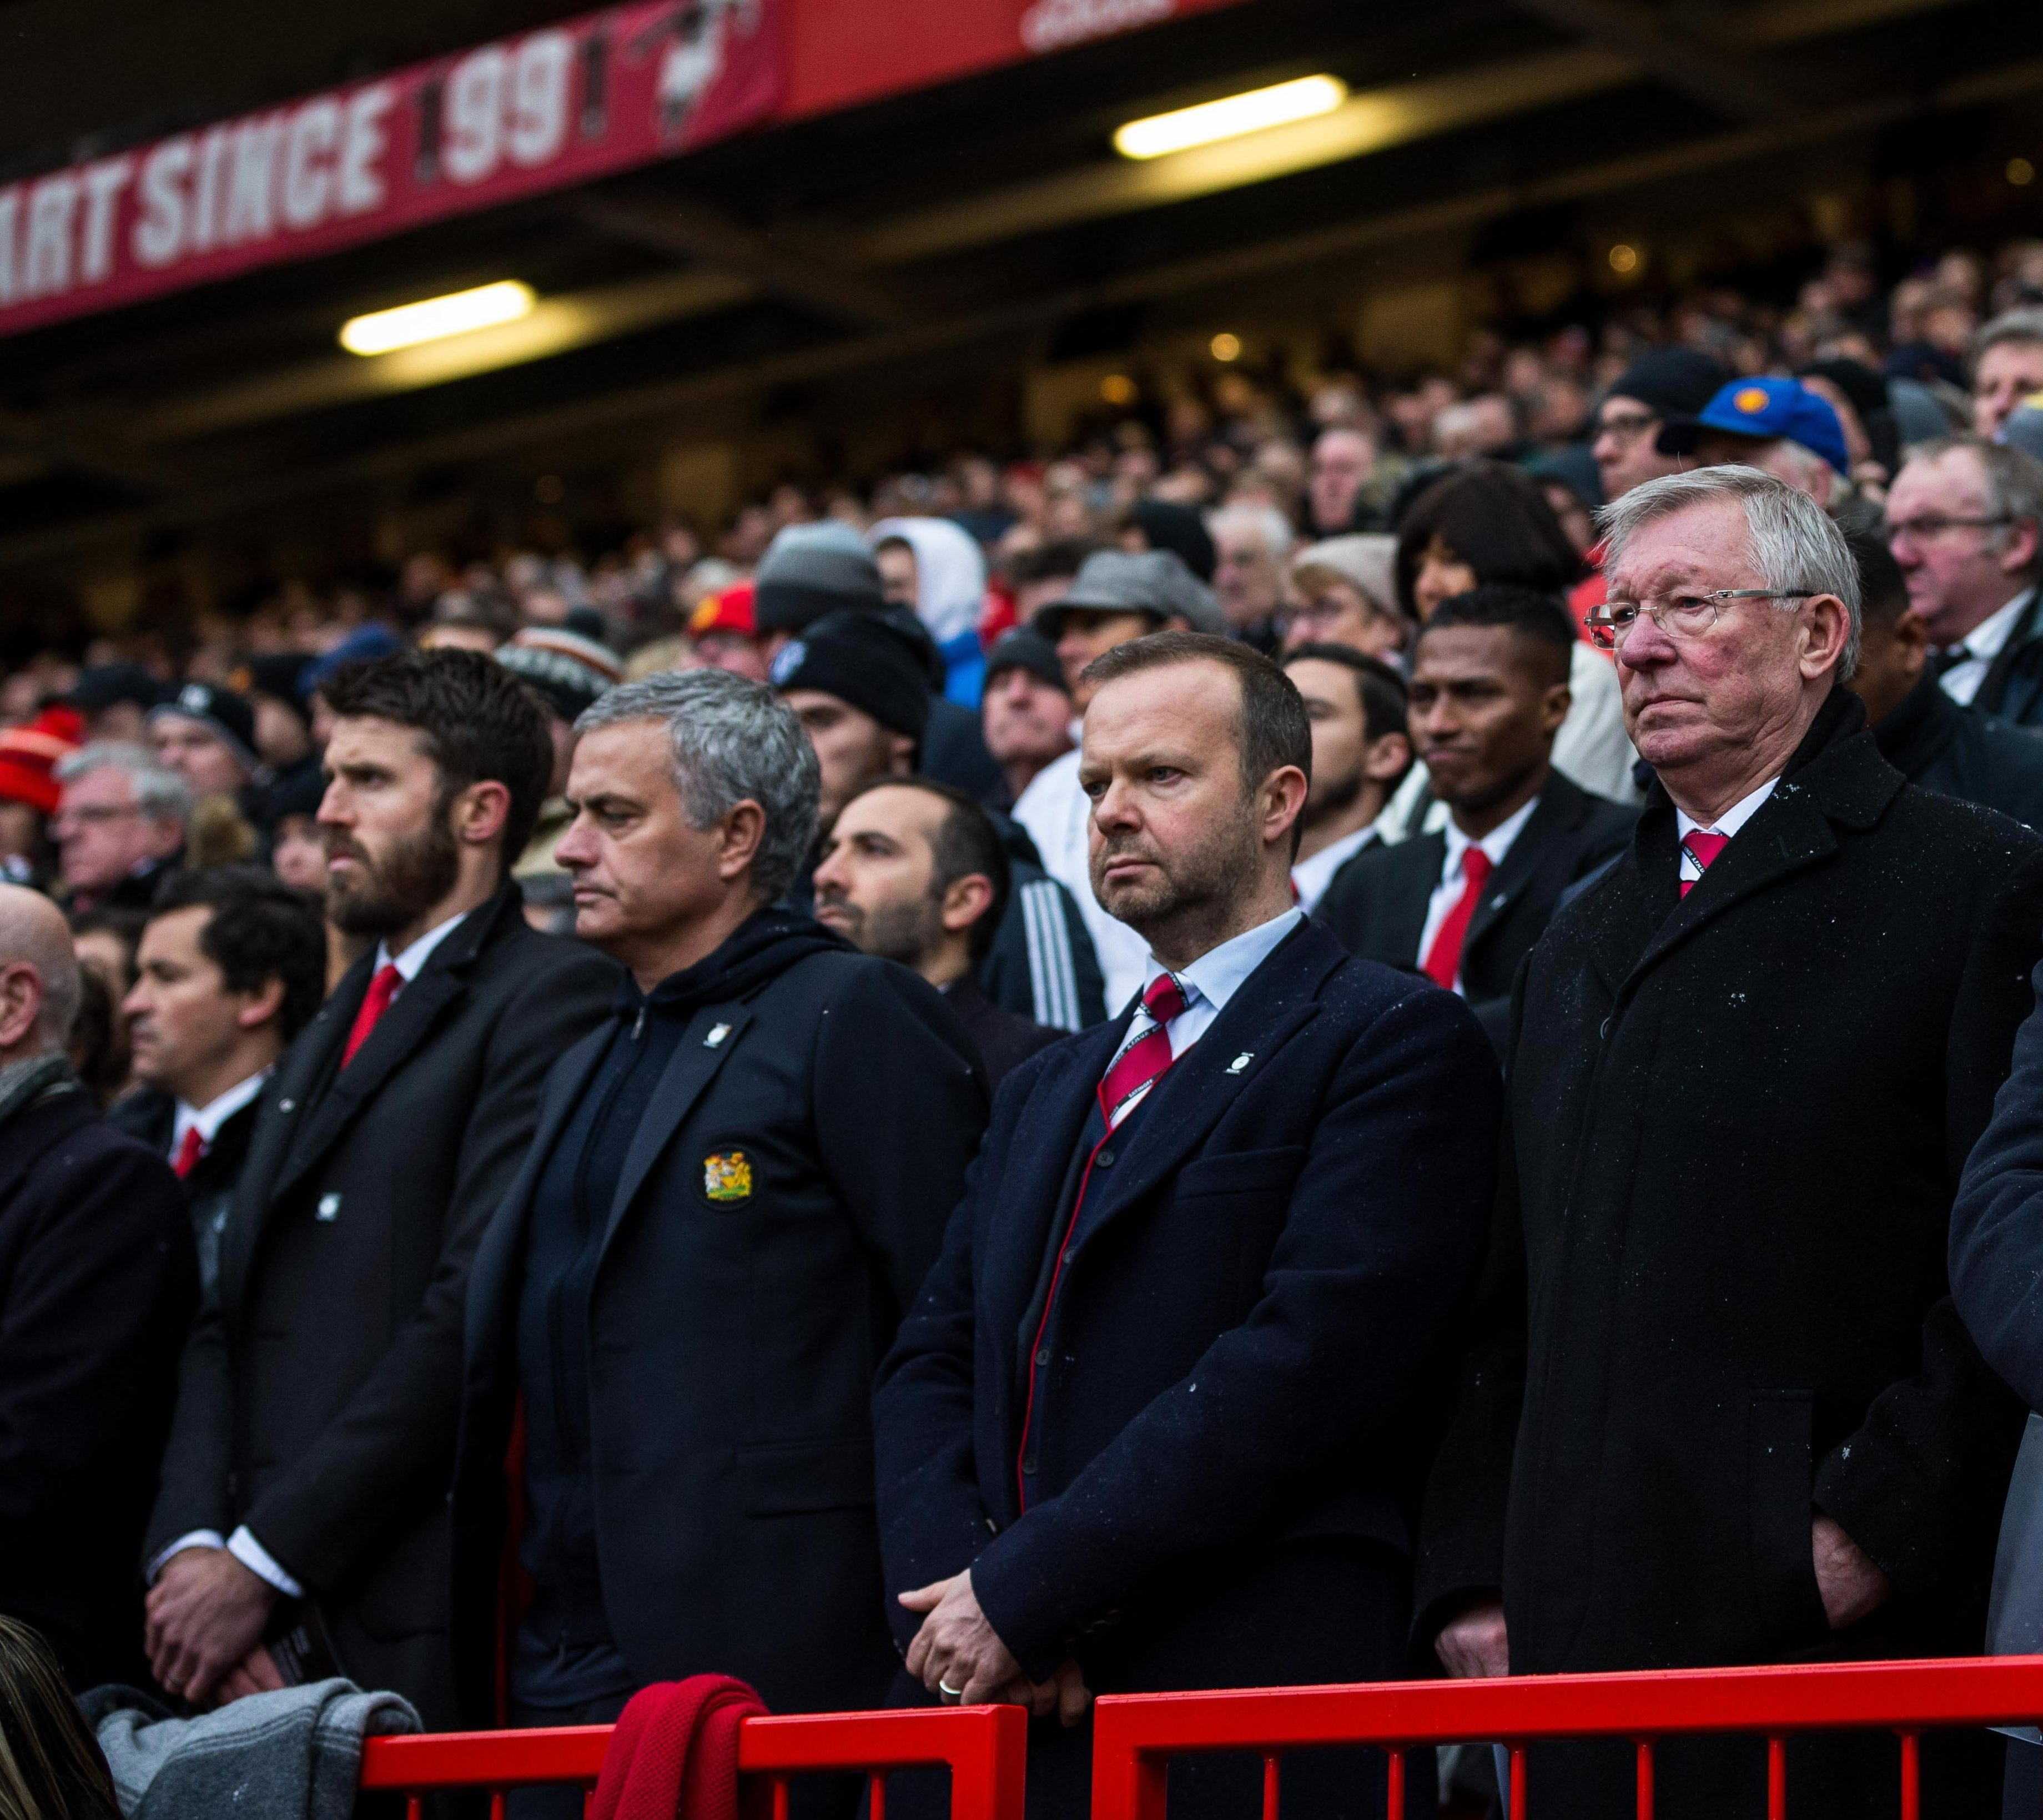 Michael Carrick, Jose Mourinho, Ed Woodward and Sir Alex Ferguson at Old Trafford yesterday